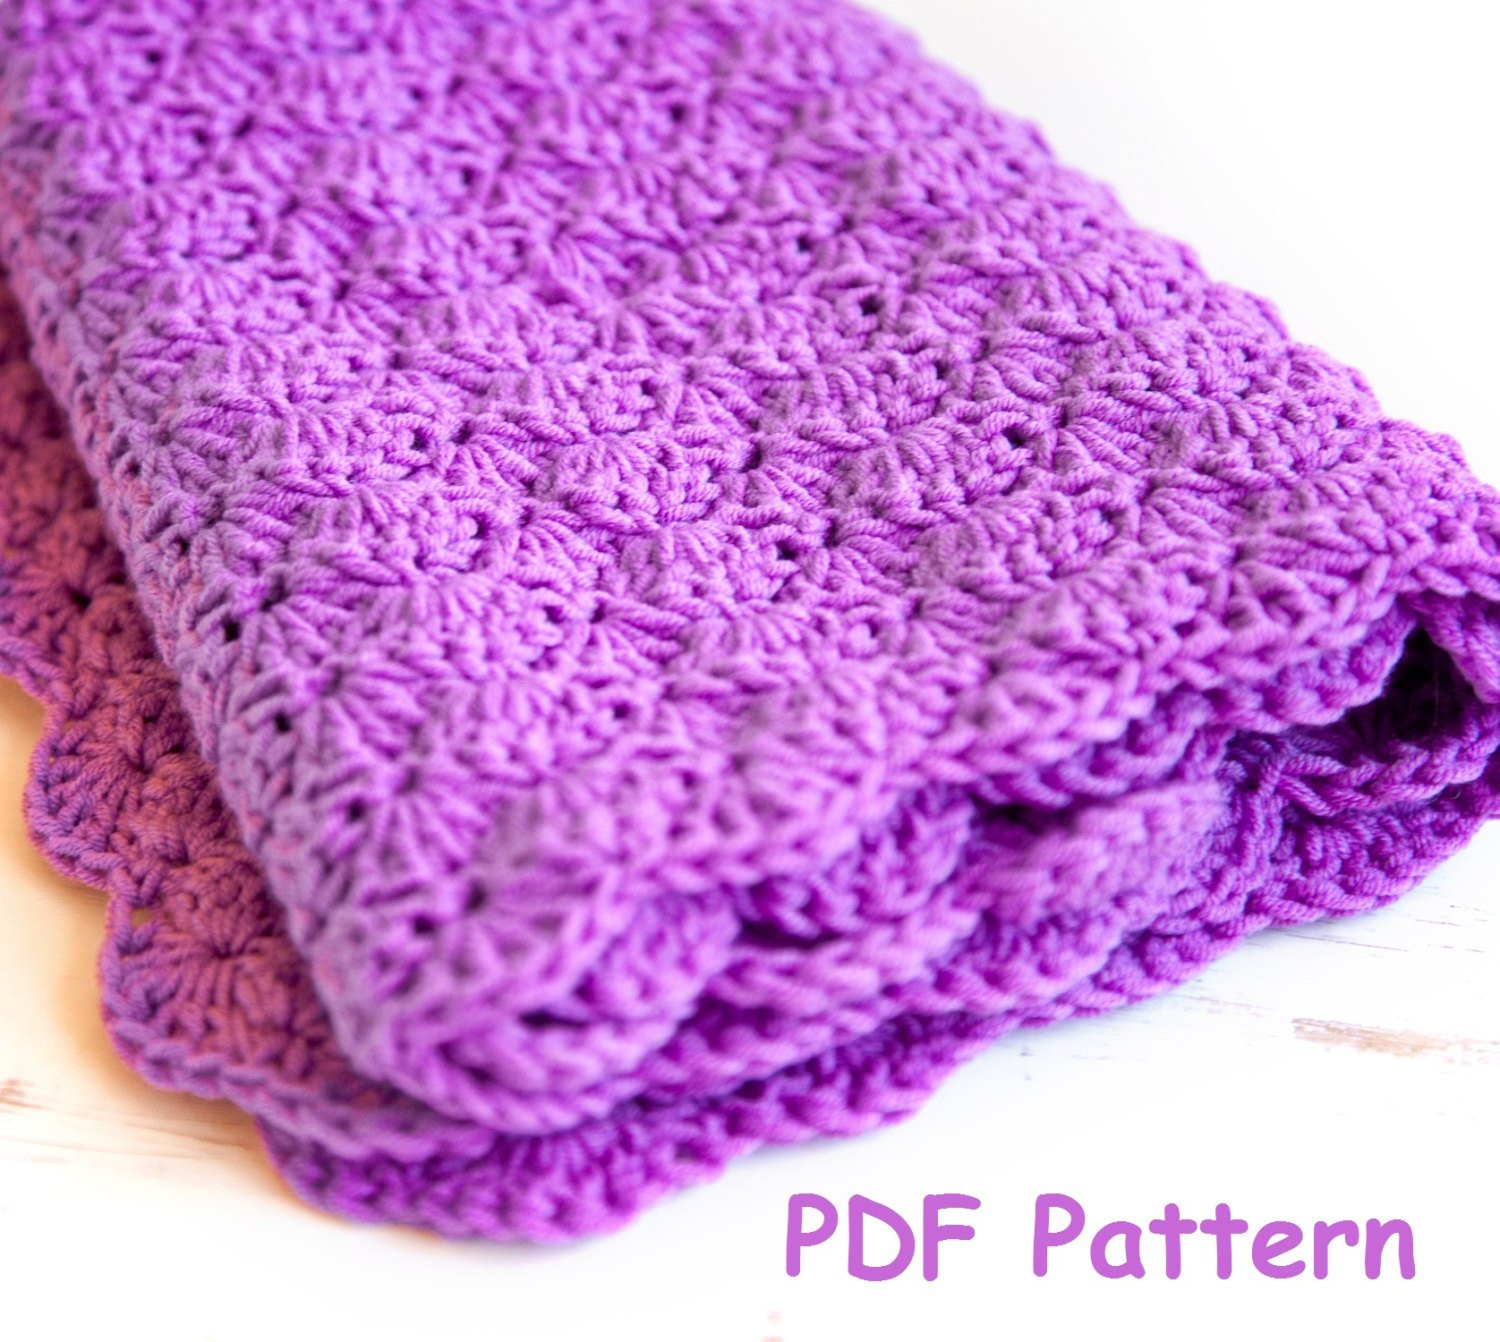 Crochet shell stitch baby blanket pattern Easy crochet for